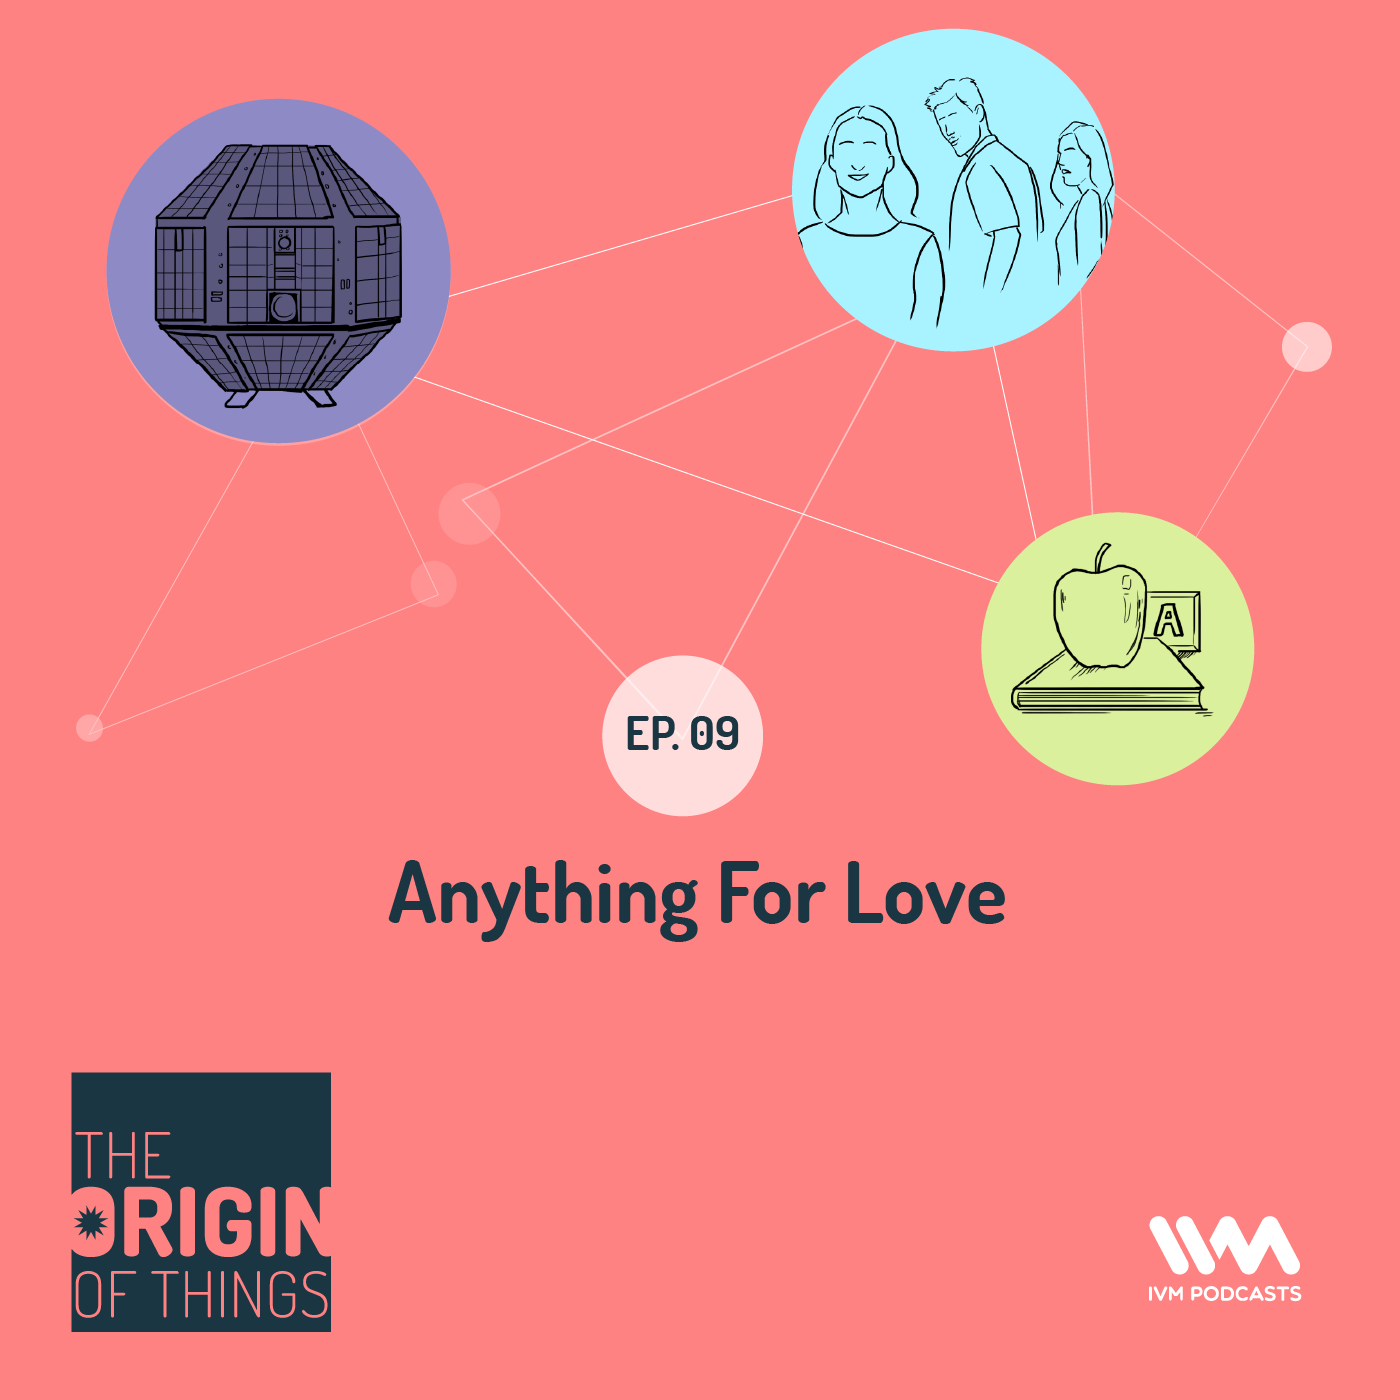 Ep. 09: Anything For Love